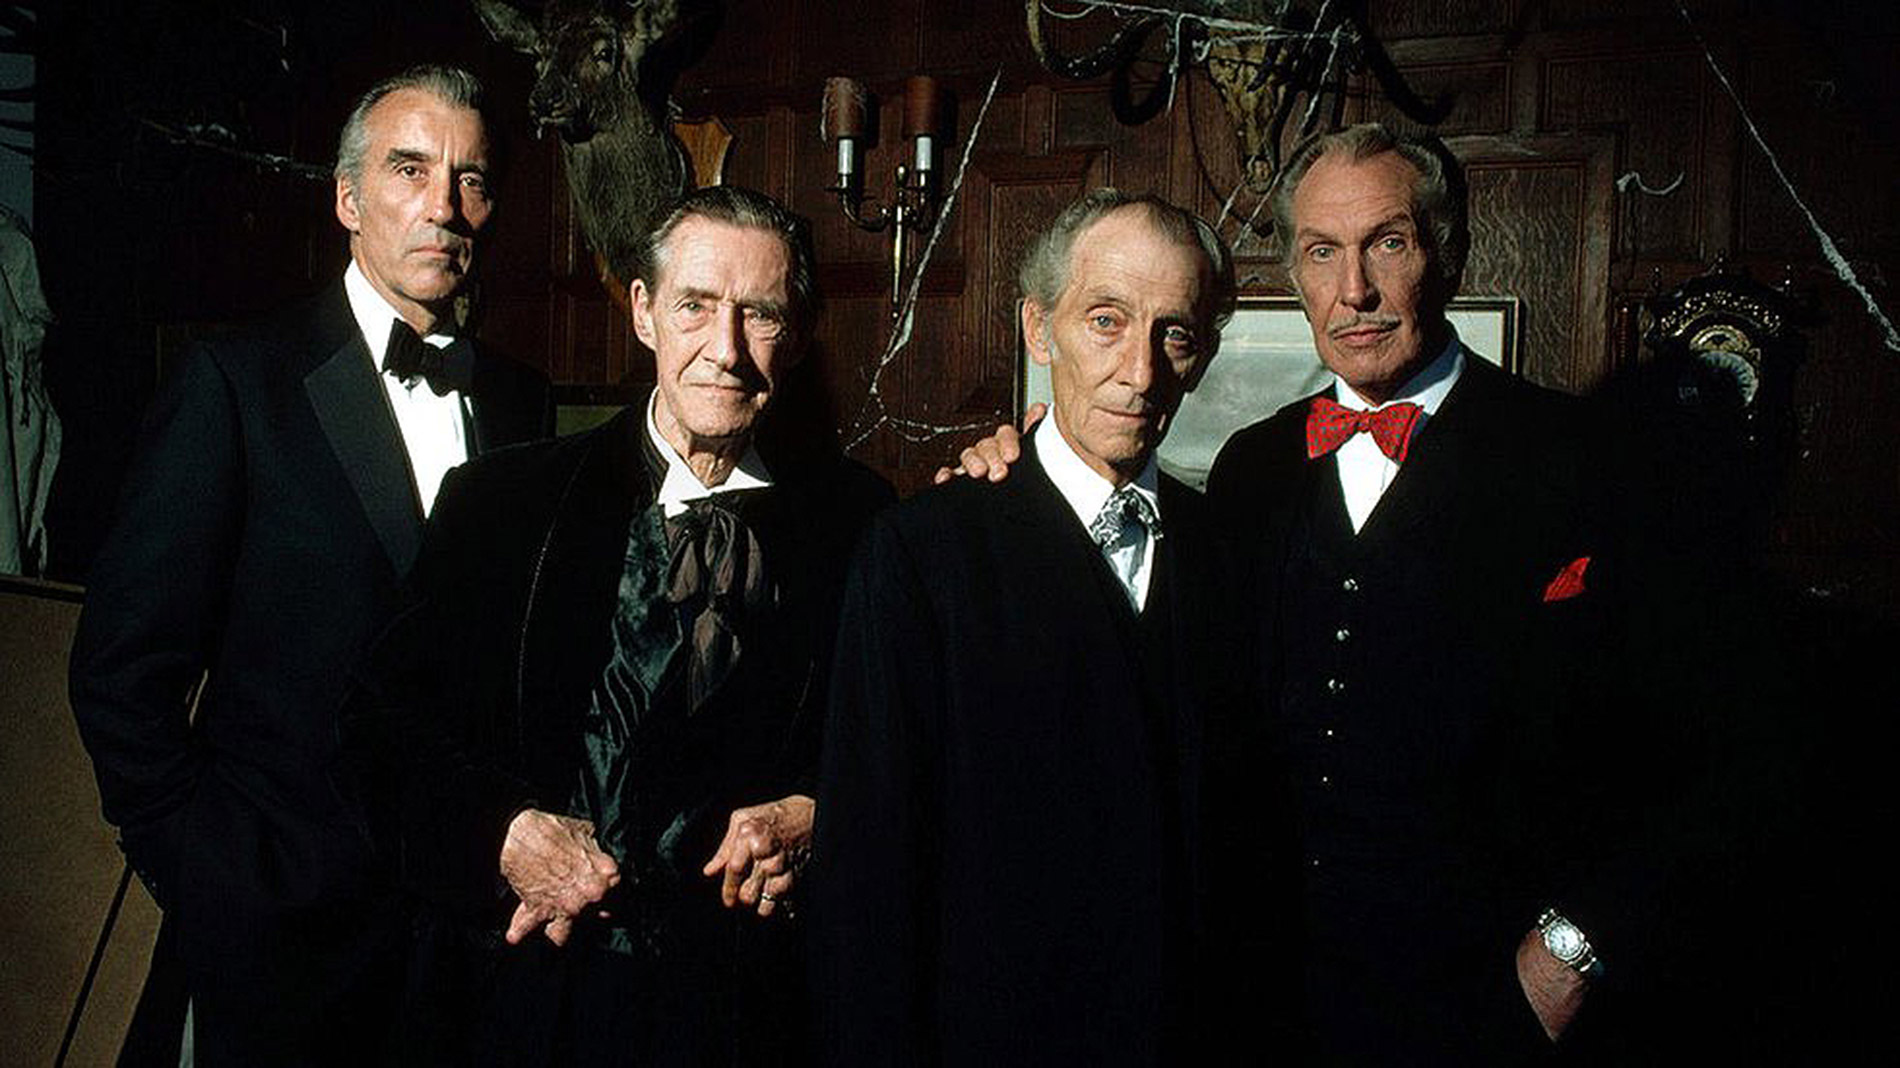 The uniting of four horror legends - (l to r) Christopher Lee, John Carradine, Peter Cushing and Vincent Price in House of the Long Shadows (1983)